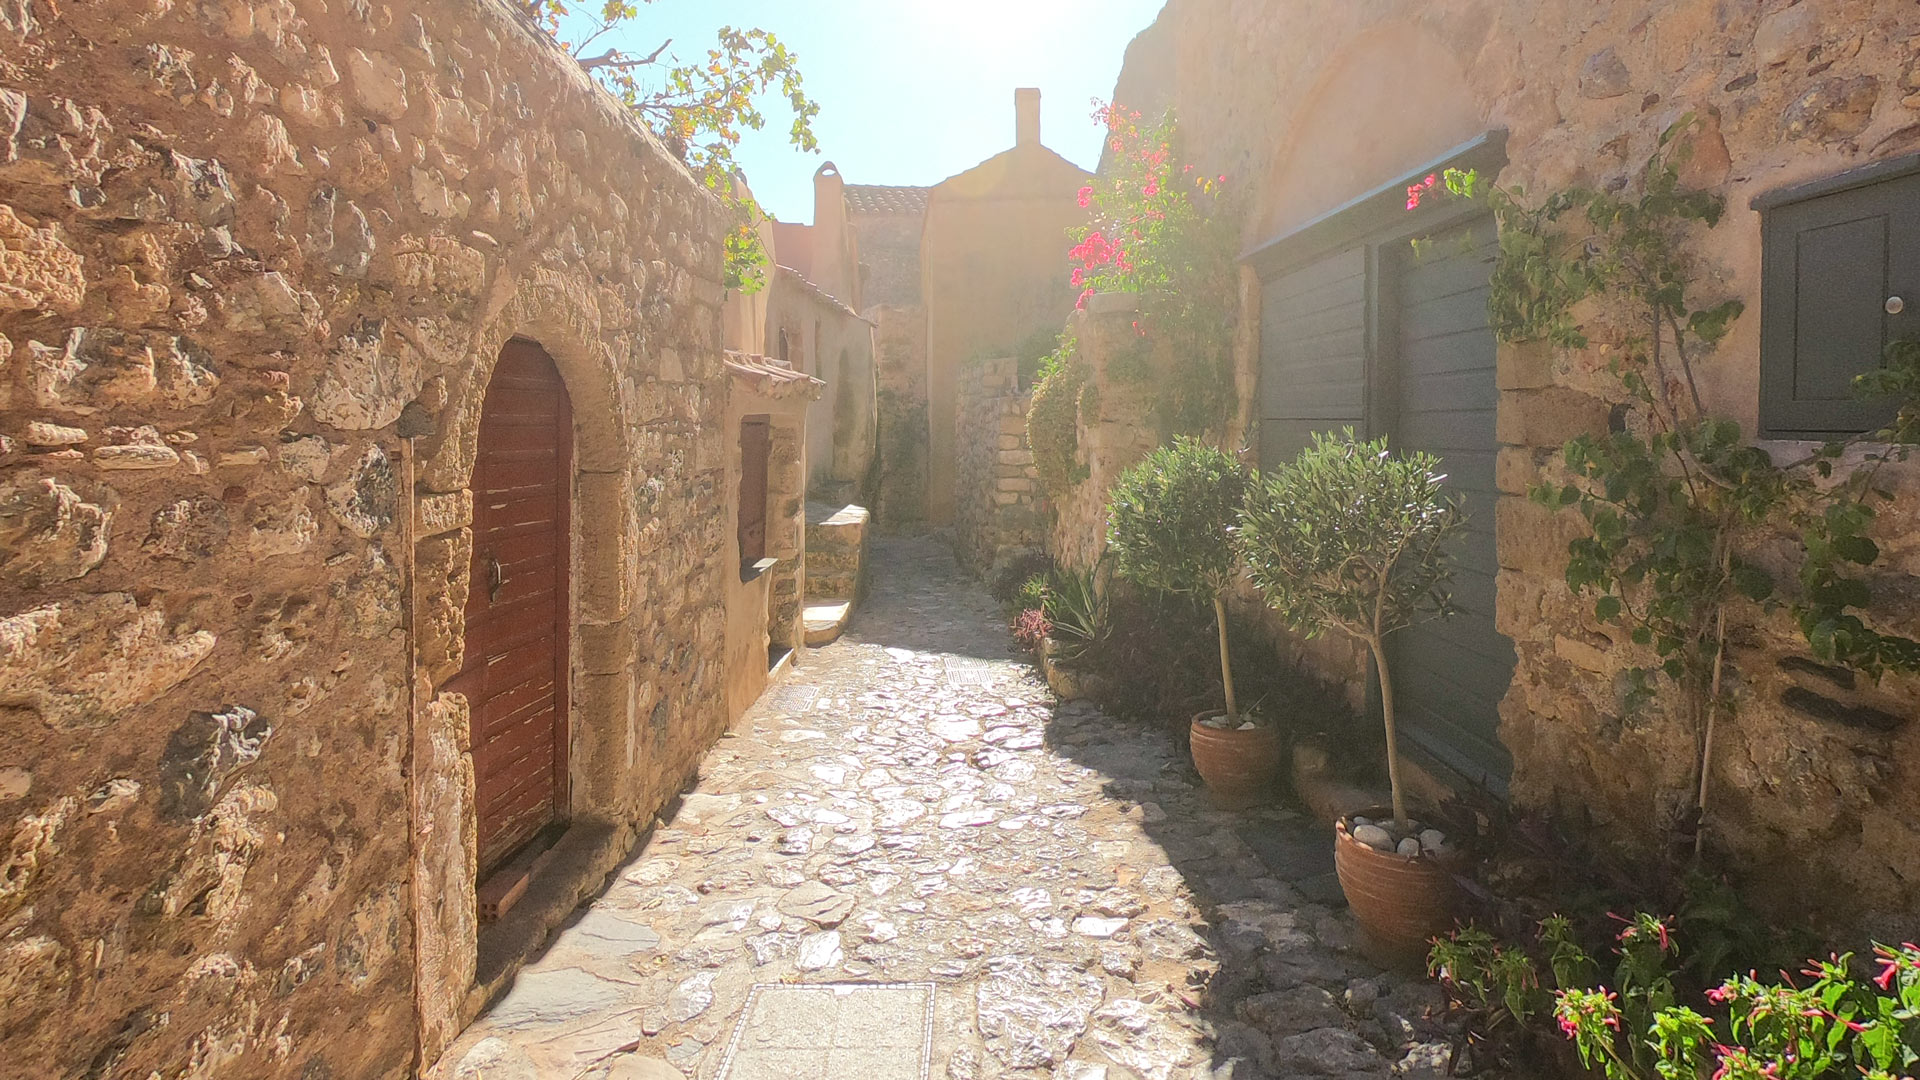 Cobblestone street in the Lower Town of Monemvasia